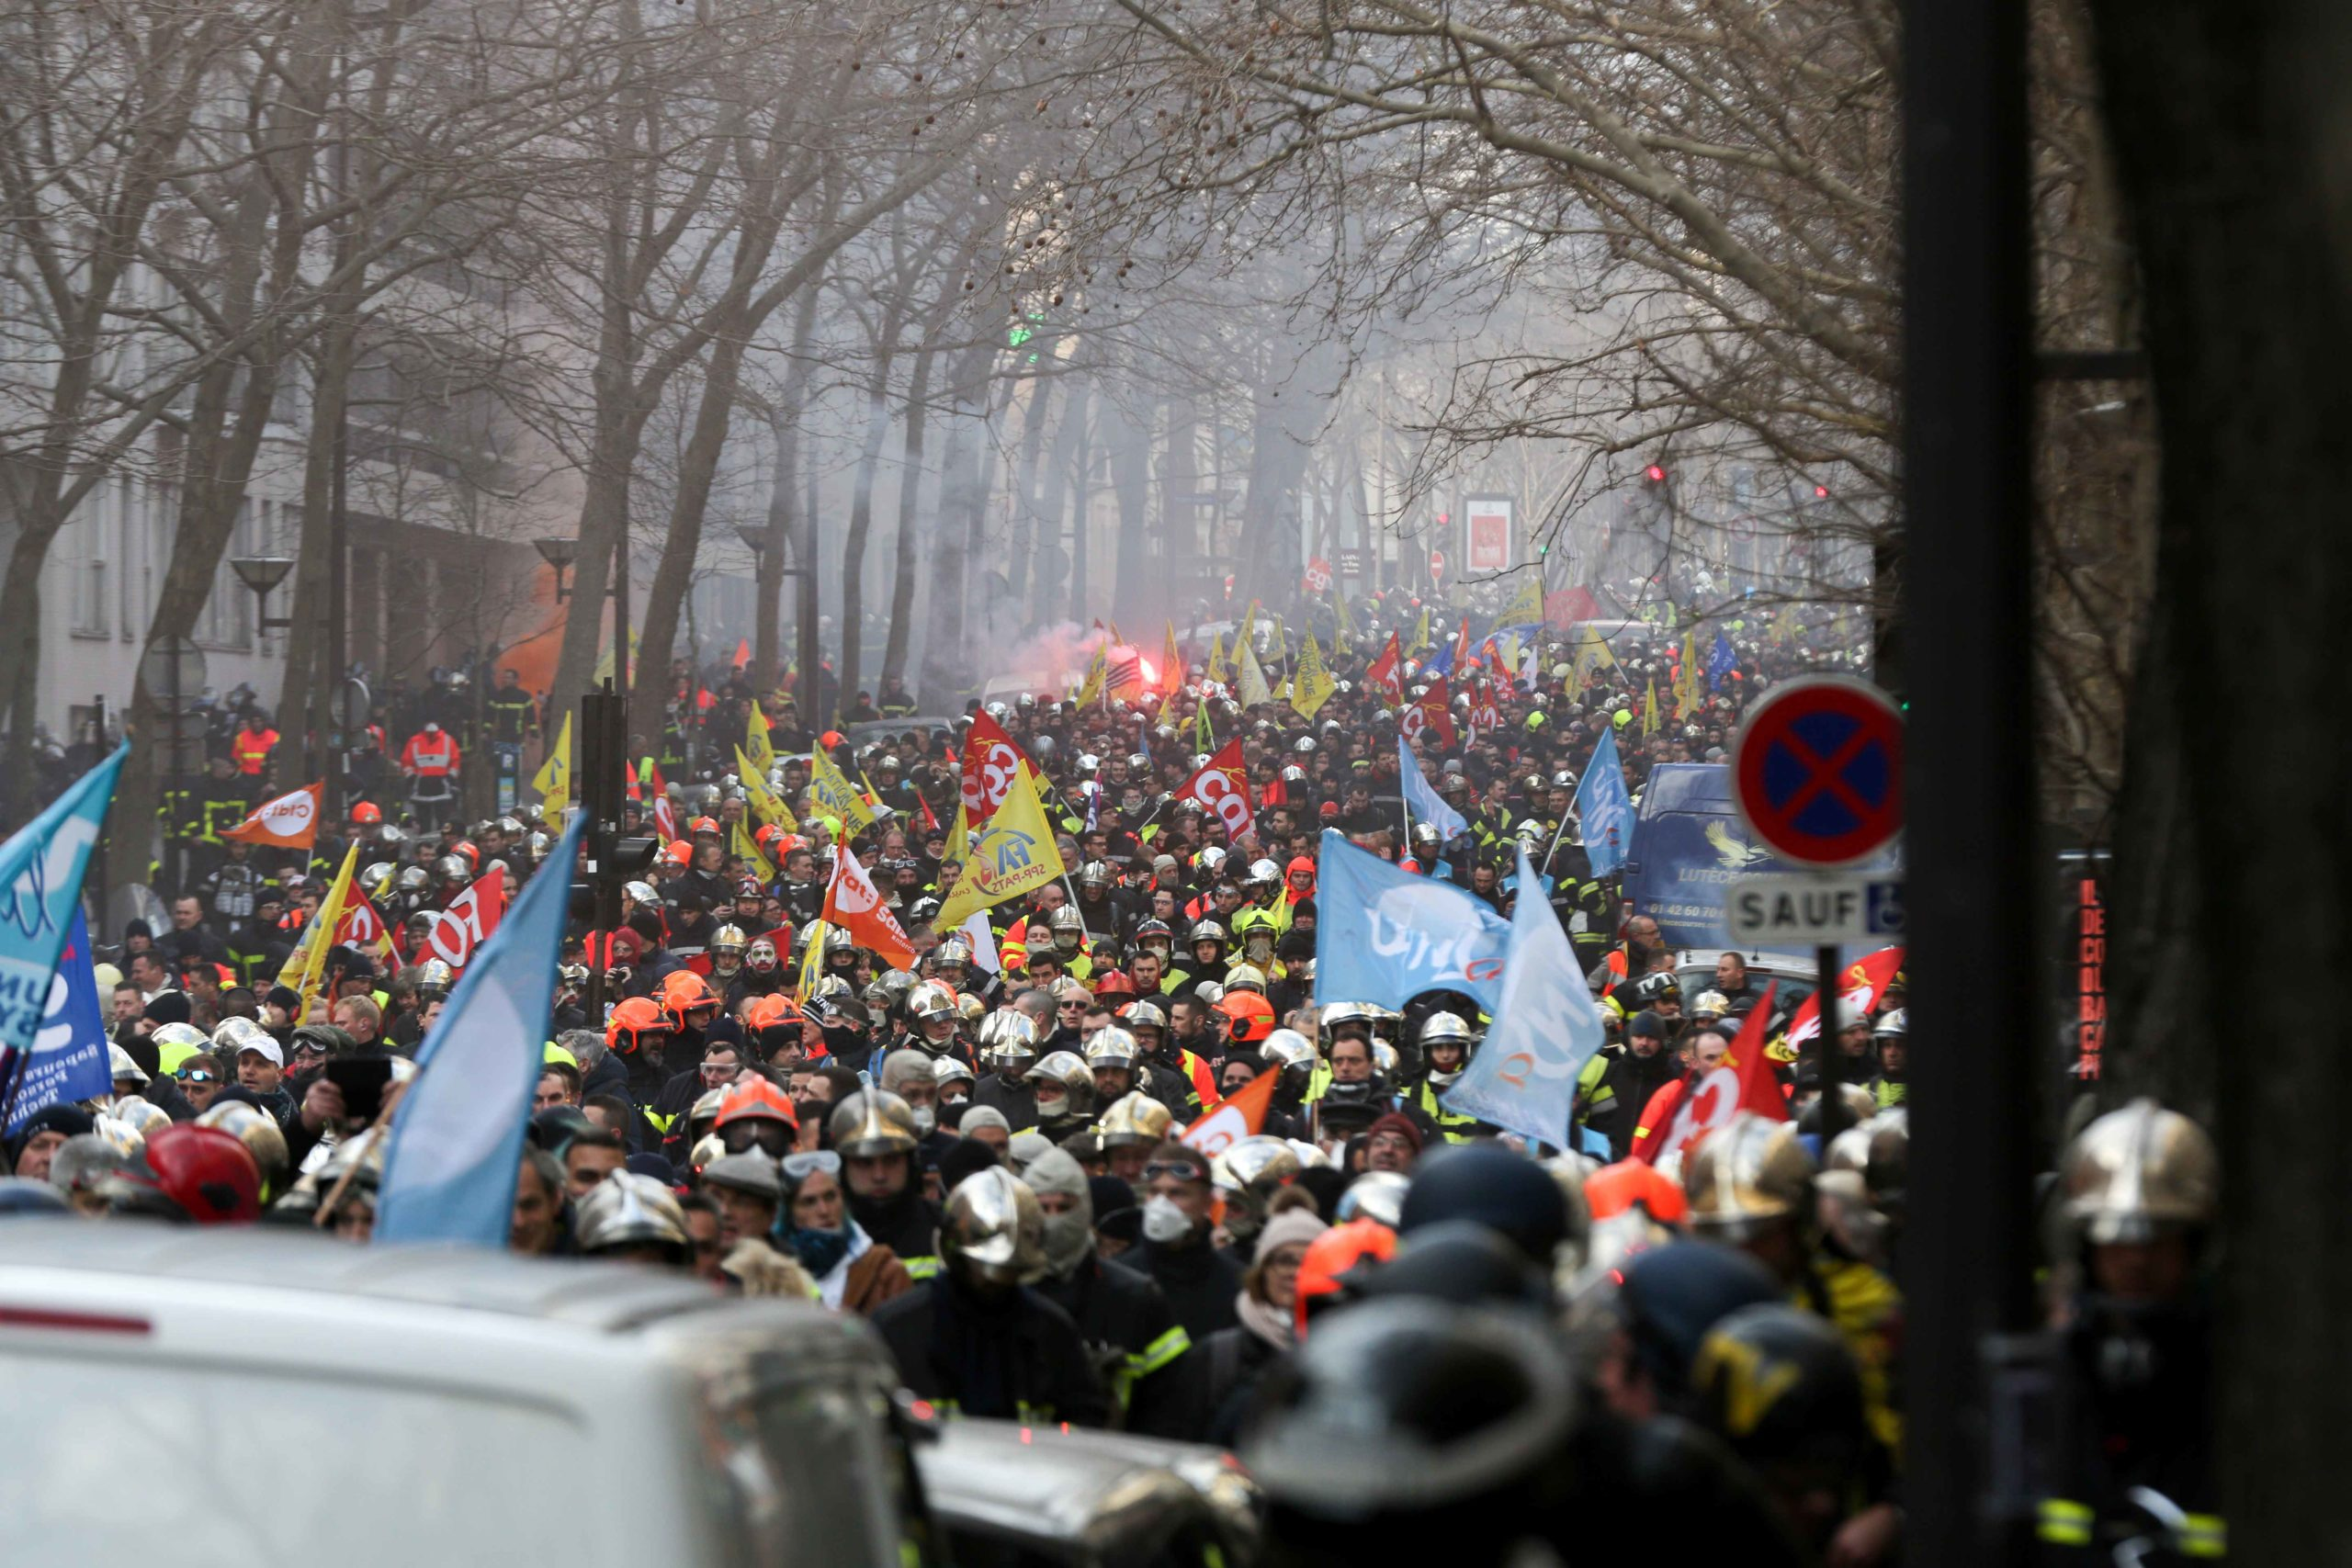 Firefighters march during a demonstration to protest against French government's plan to overhaul the country's retirement system in Paris, on January 28, 2020.